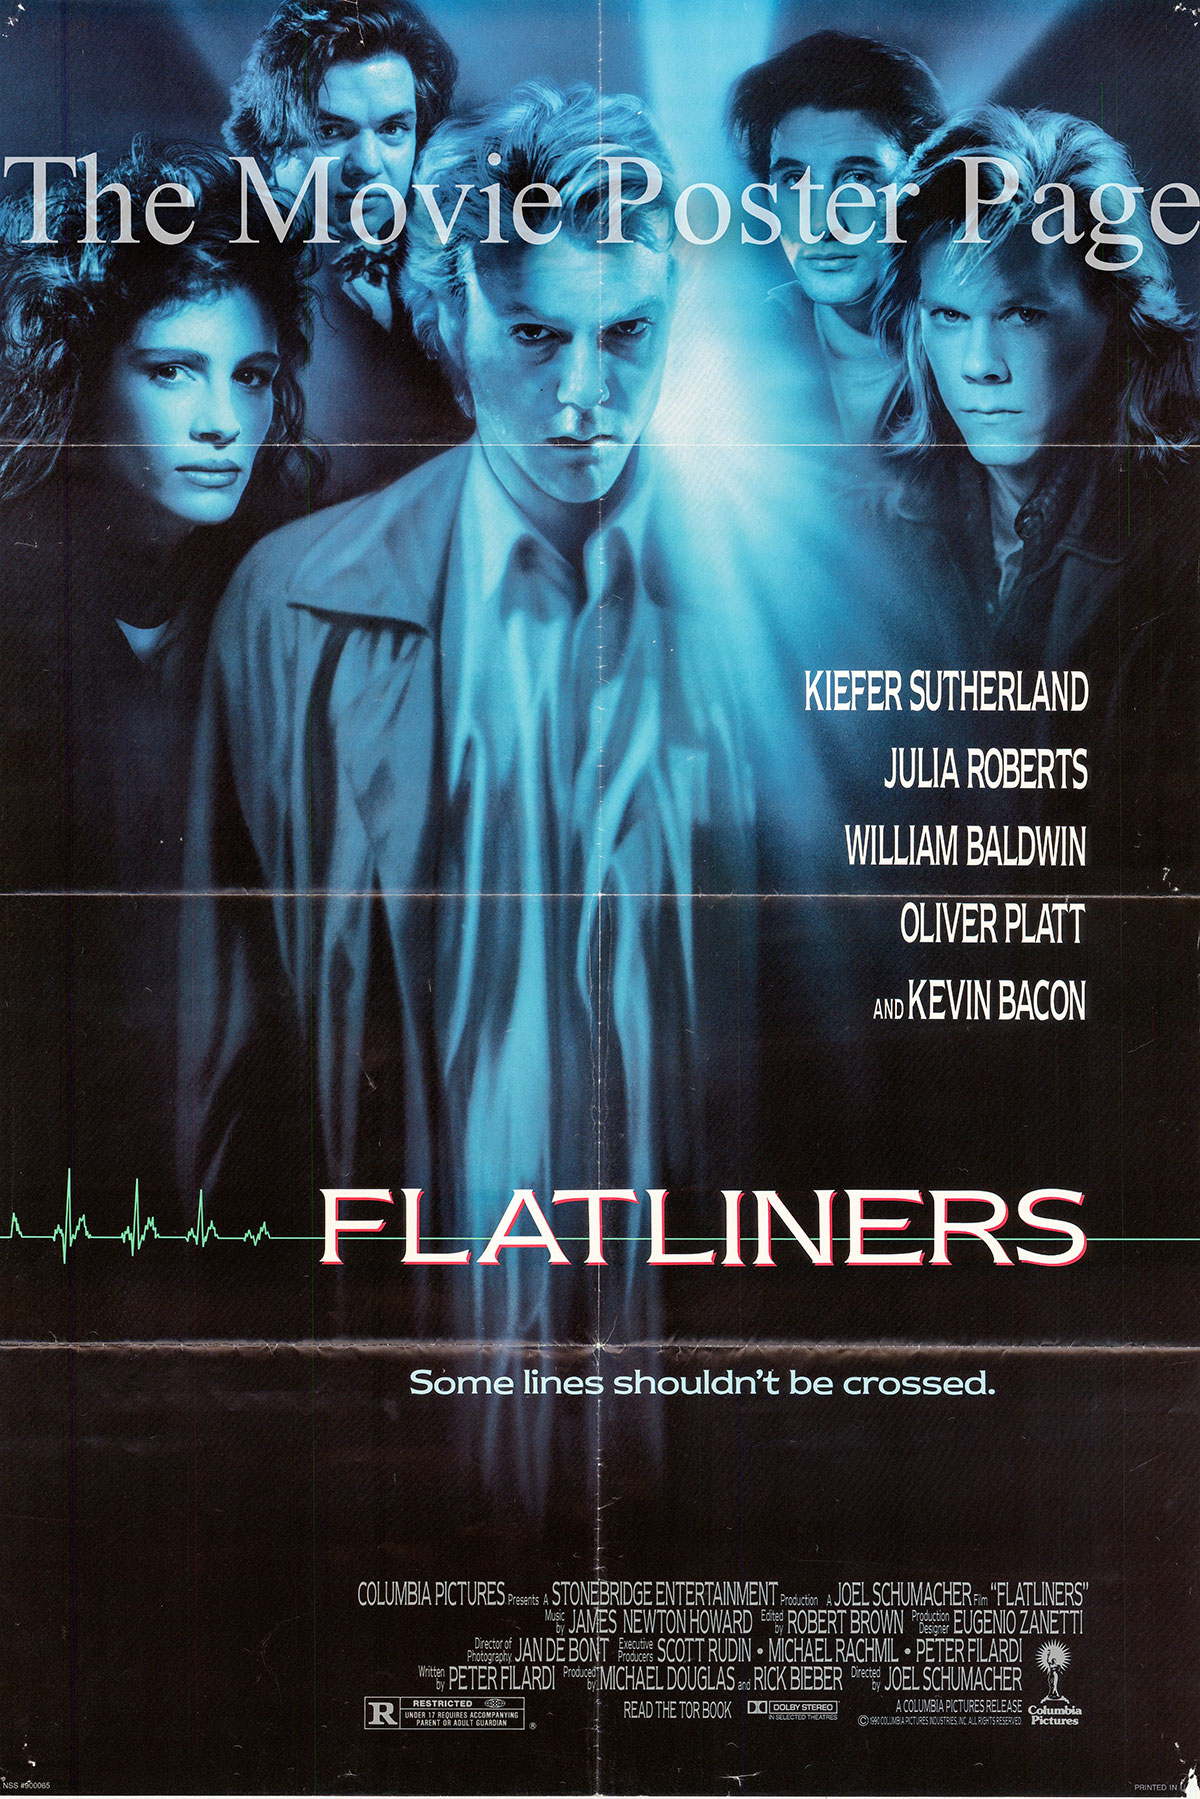 Pictured is a US one-sheet for the 1990 Joel Schumacher film Flatliners starring Kiefer Sutherland.